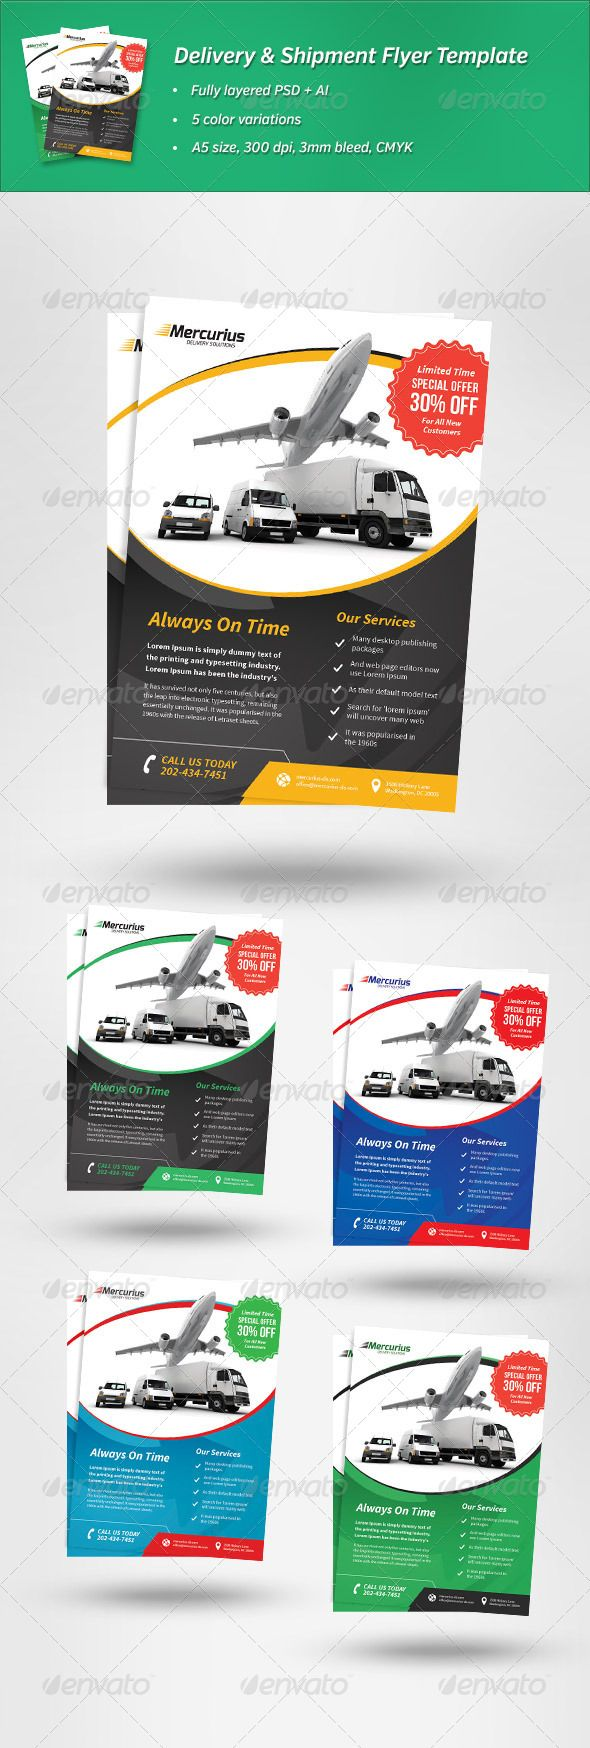 Delivery & Shipment Flyer Template | Flyer template and Print ...